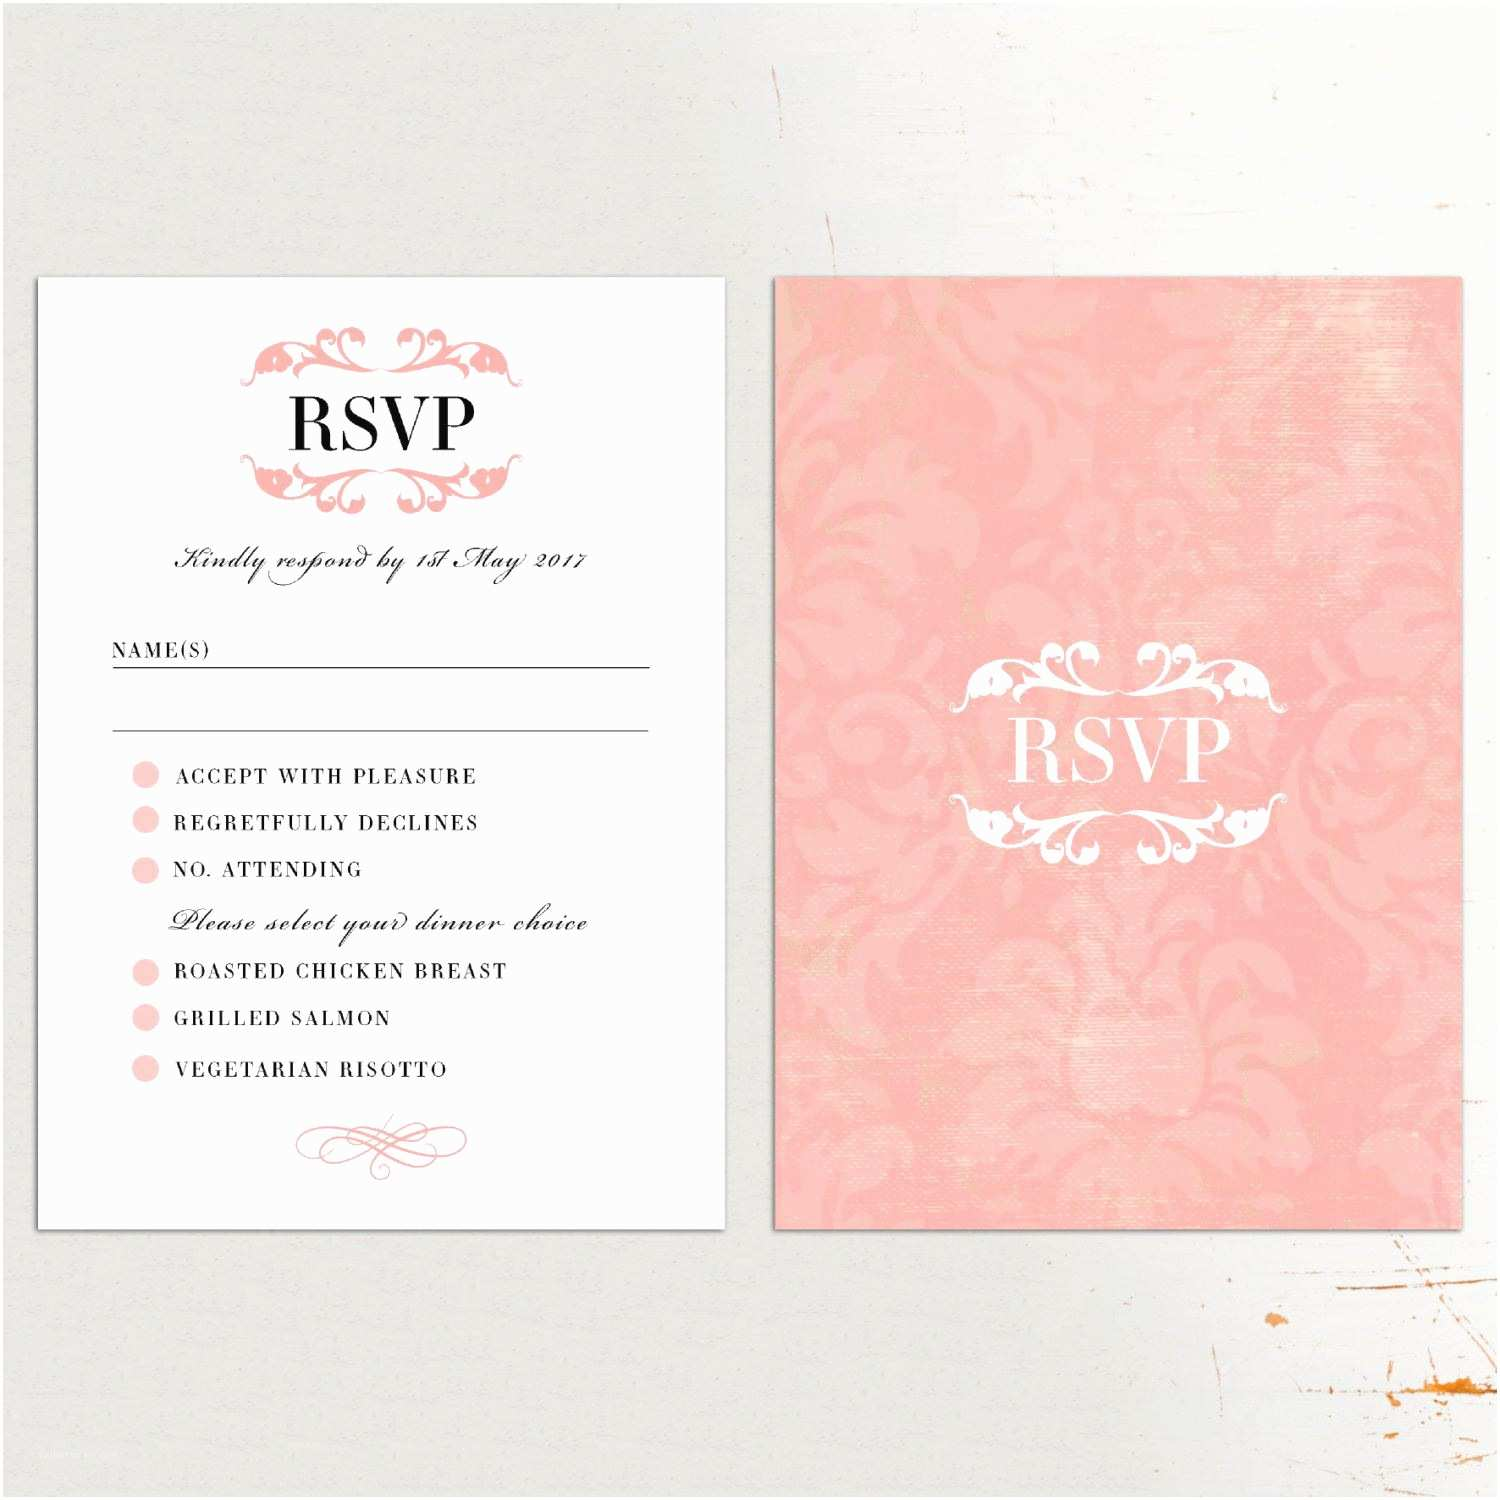 Wedding Invitations and Response Cards All In One Wedding Invitations with Rsvp Cards Included Wedding